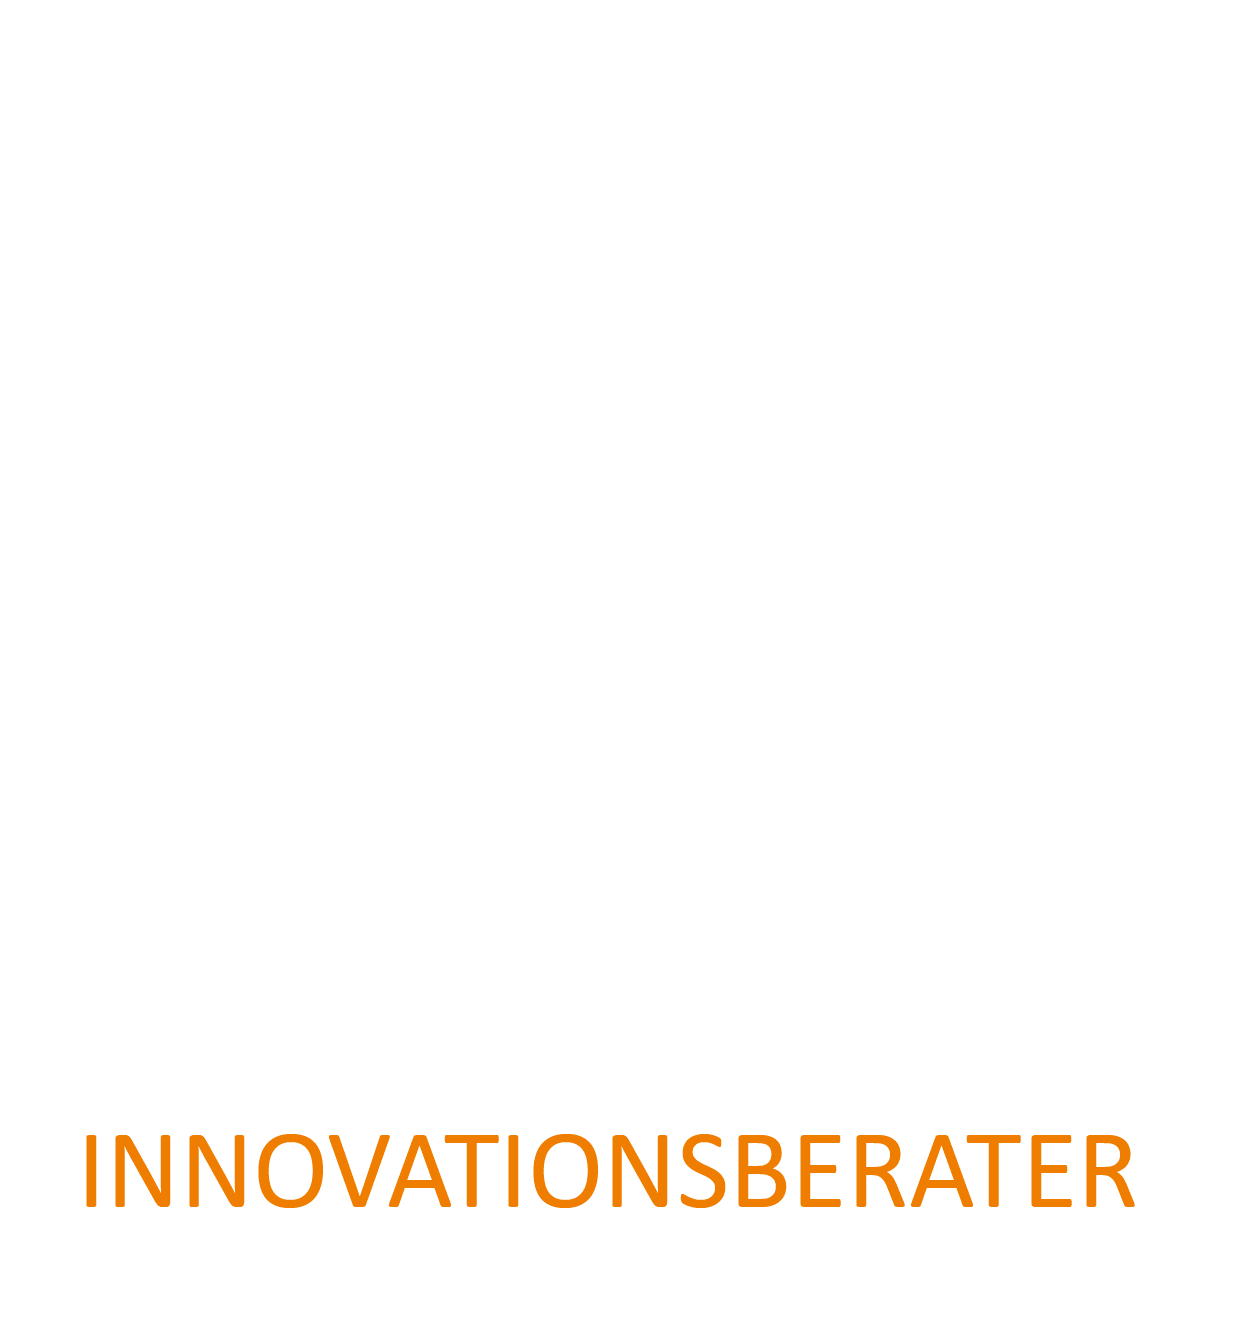 Innovationsberater